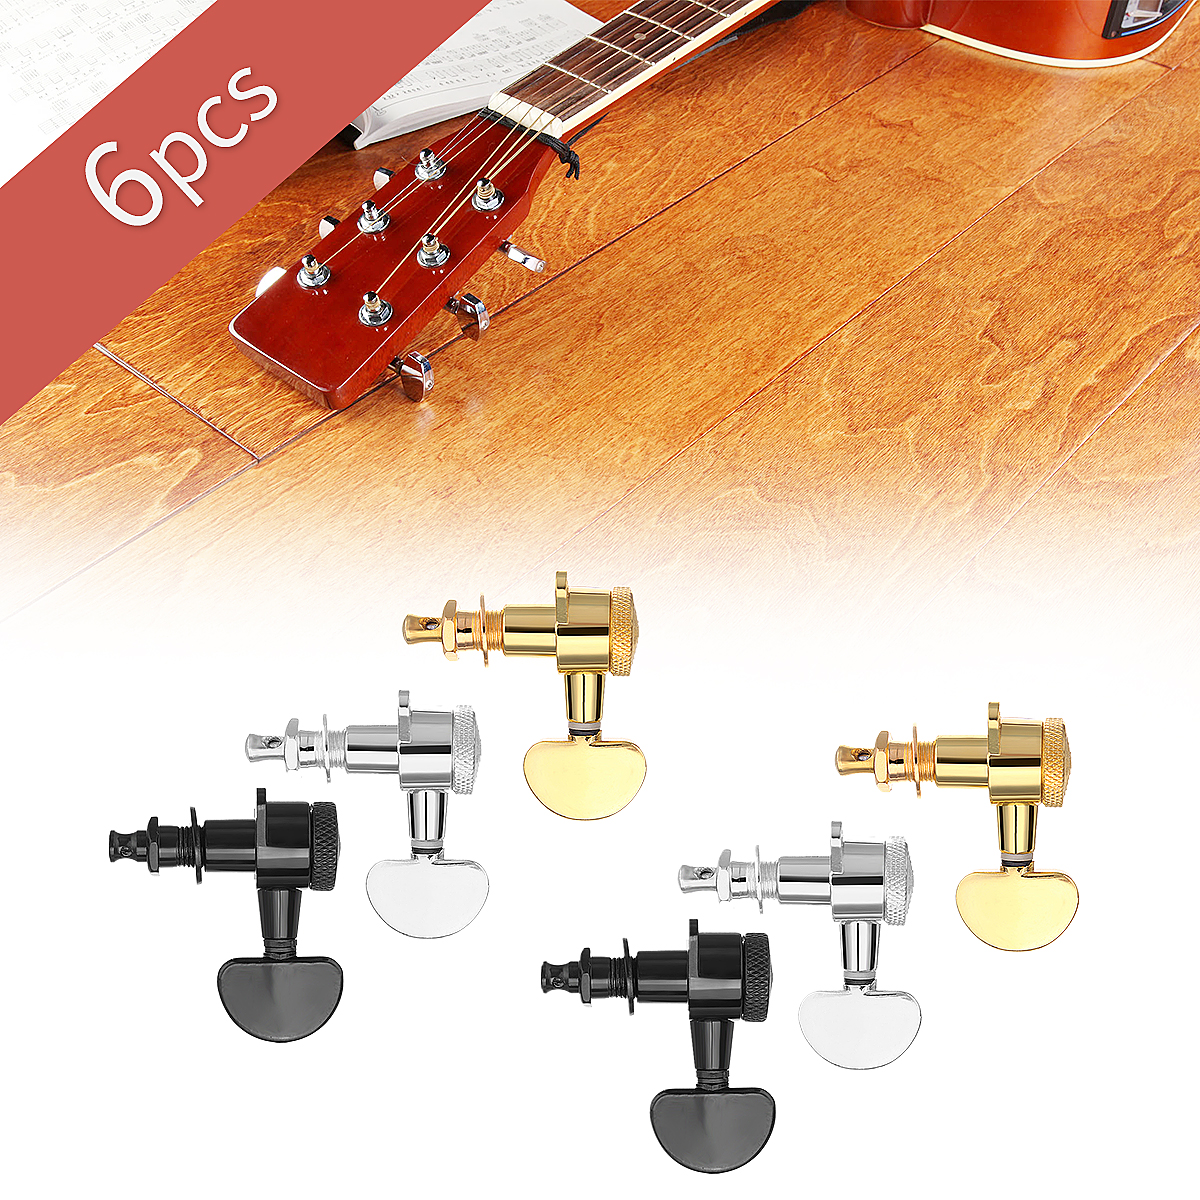 6pcs 3r 3l guitar tuners machine auto locking tuners guitar tuning pegs black gold siliver for. Black Bedroom Furniture Sets. Home Design Ideas